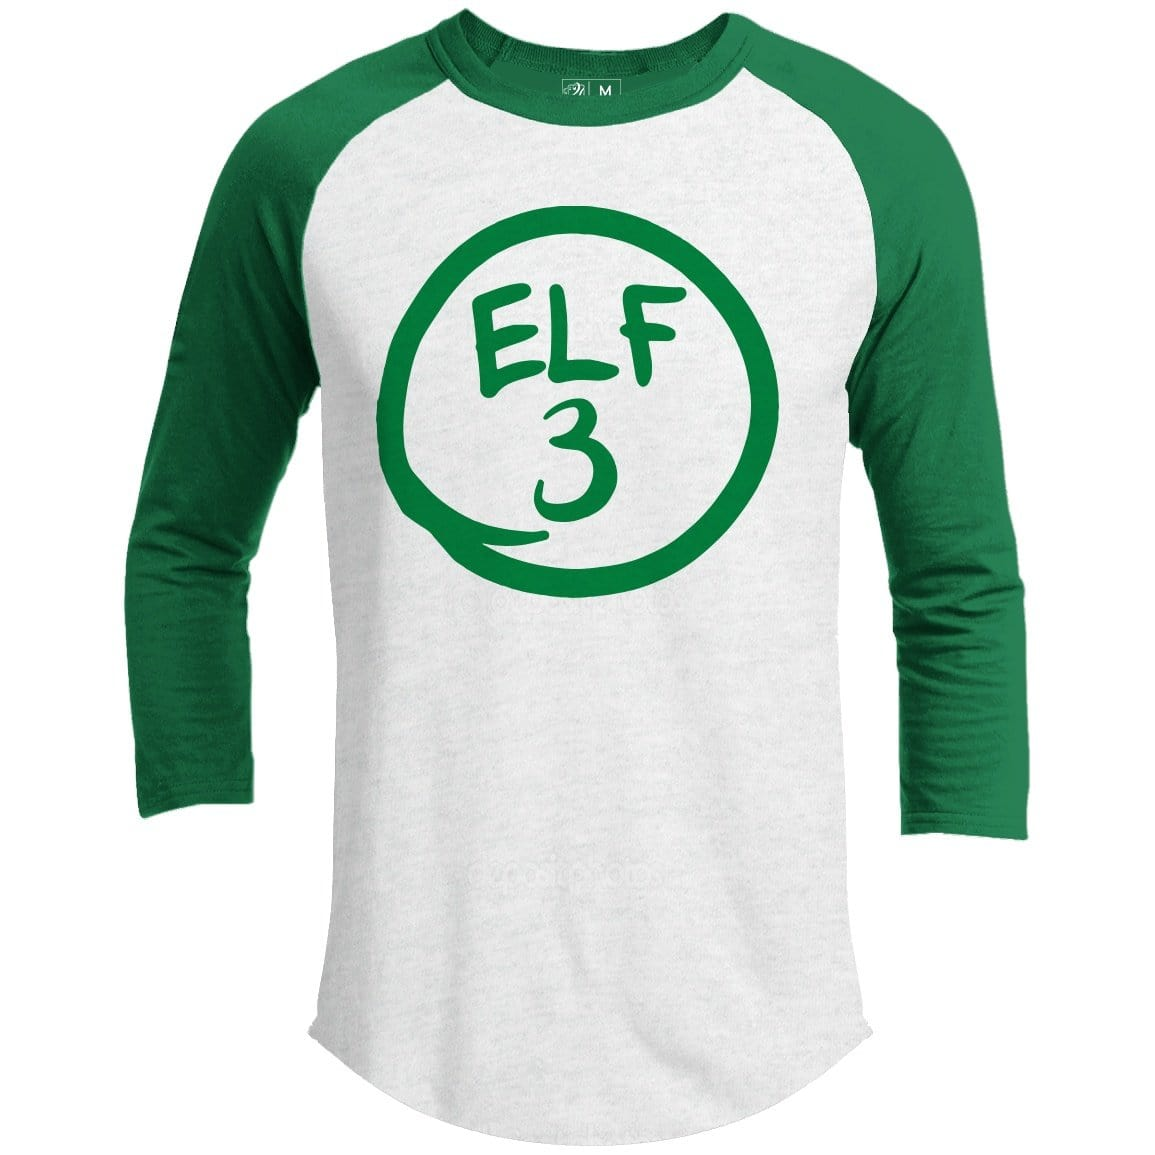 Elf 3 Premium Group Christmas Raglan